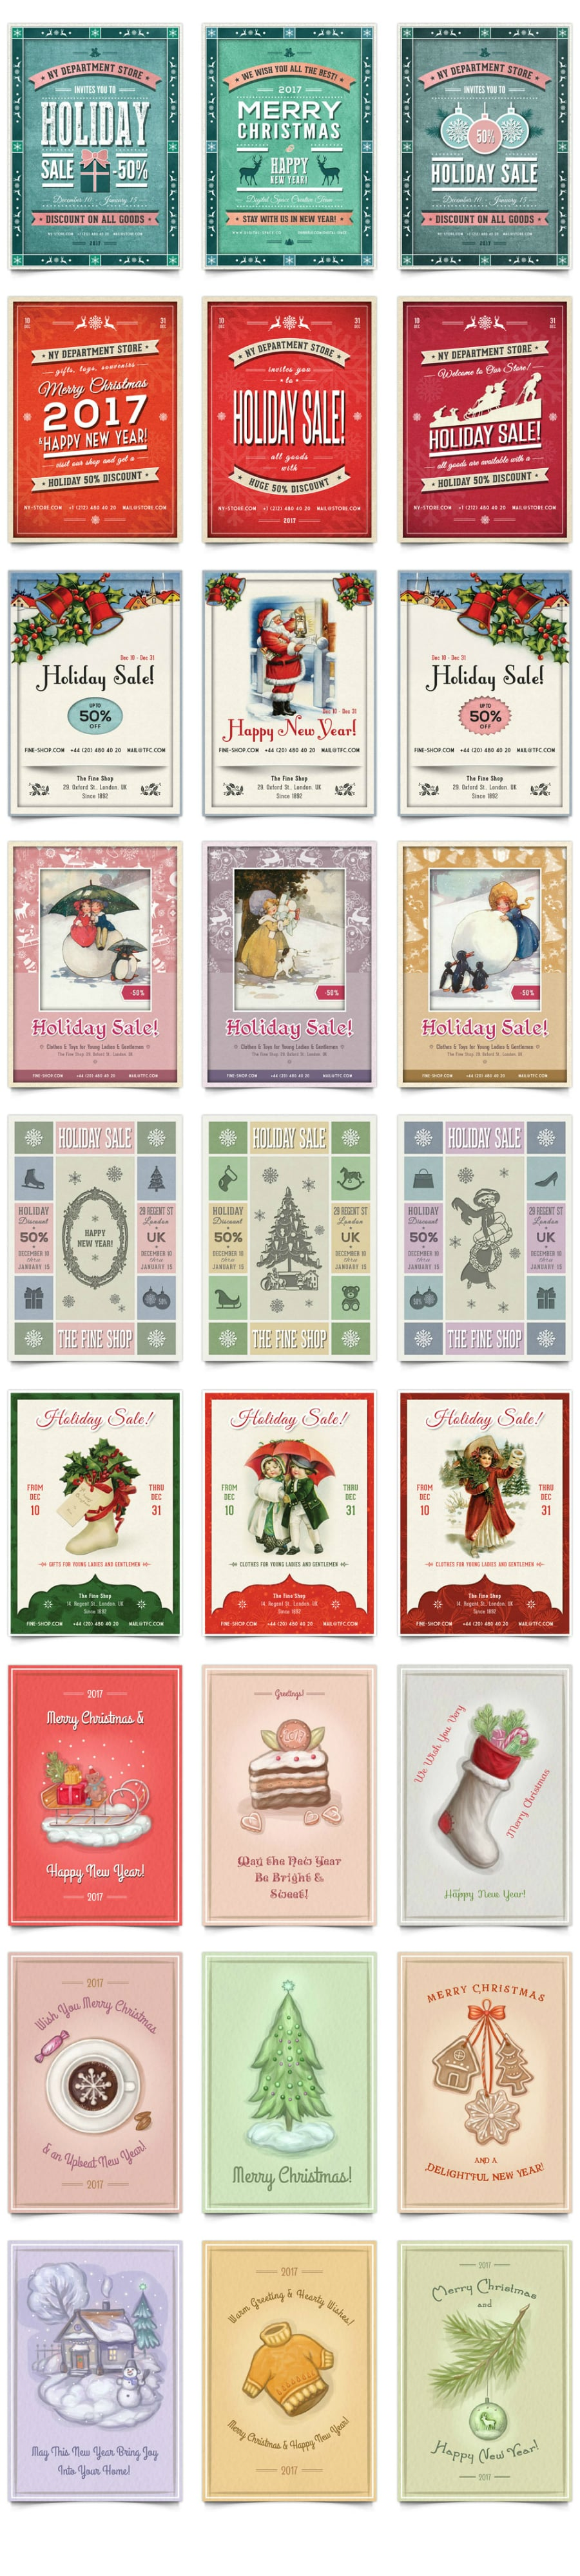 34 Christmas & New Retro Flyers and Postcards Collection - $19 - Long Preview Part 1